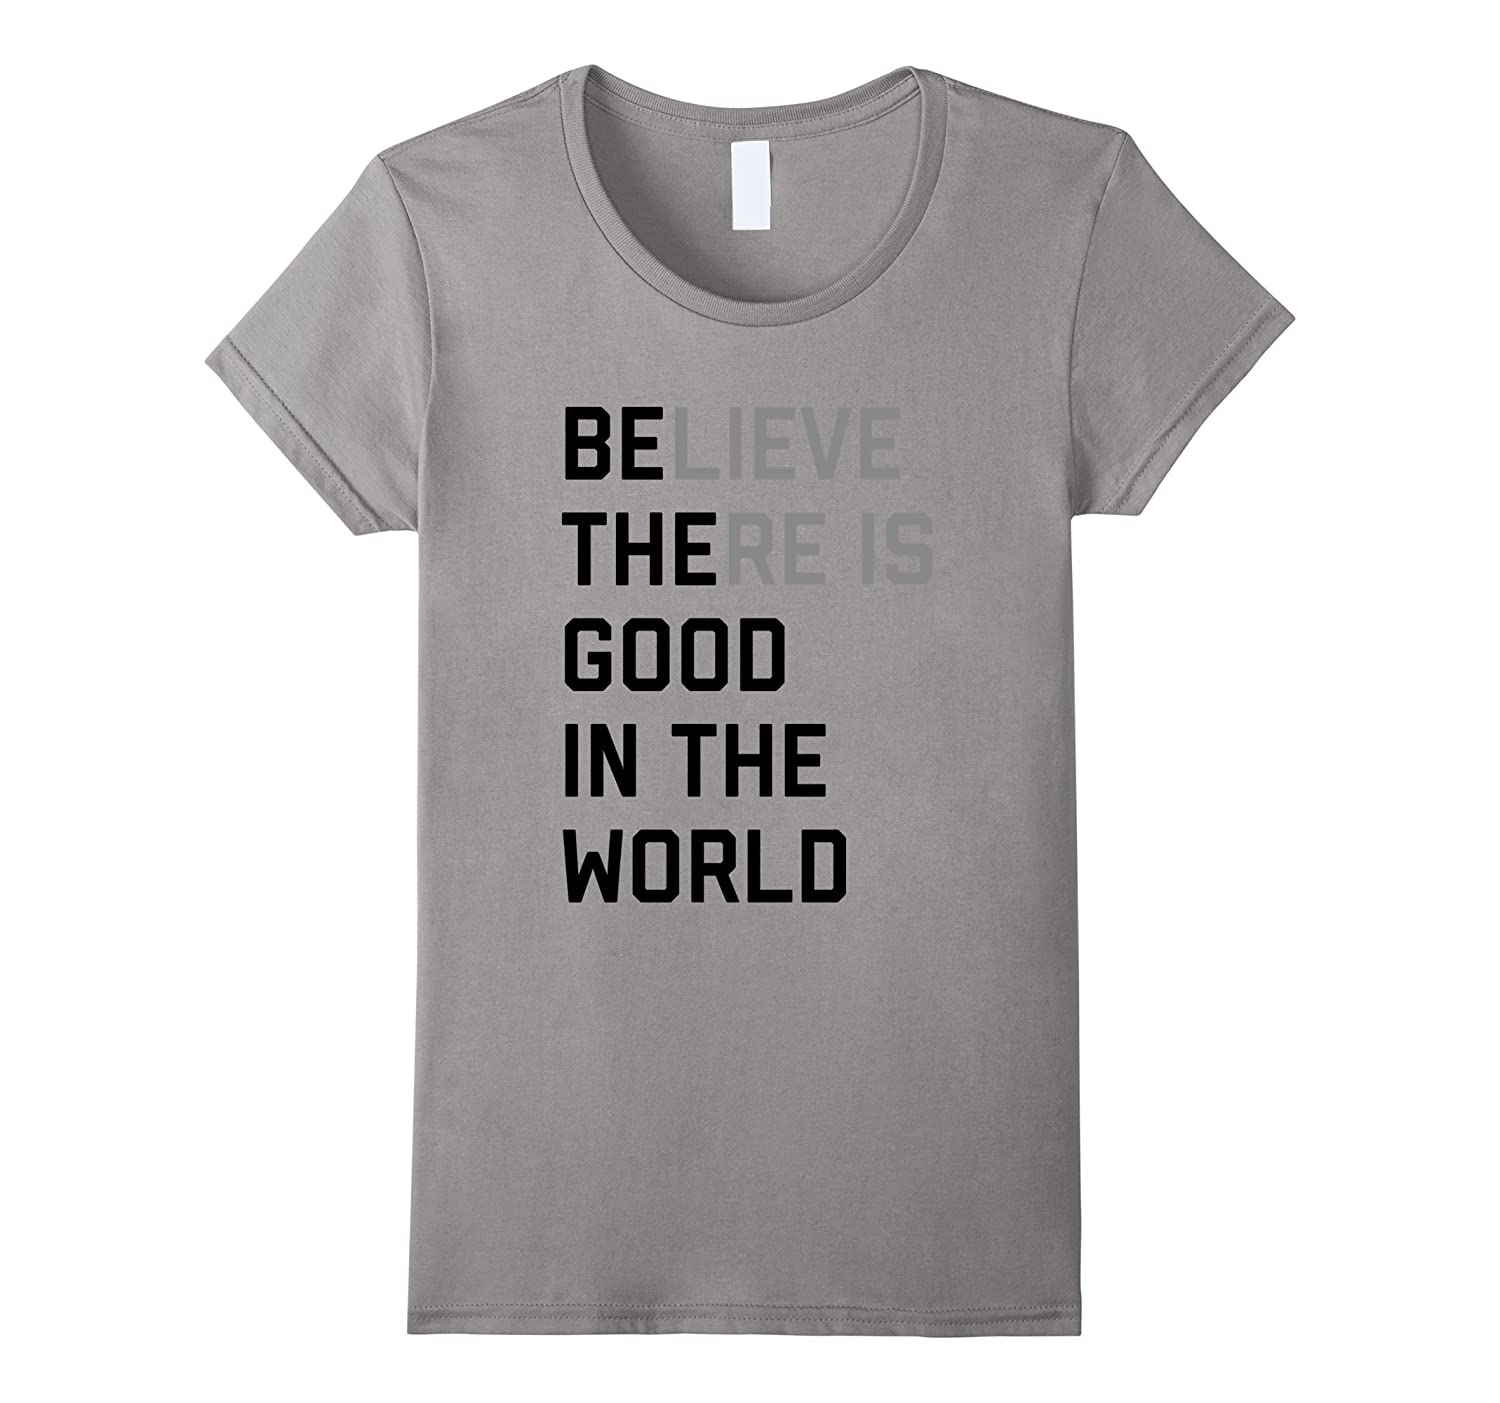 Be The & Believe There Is Good In The World Tee Shirt